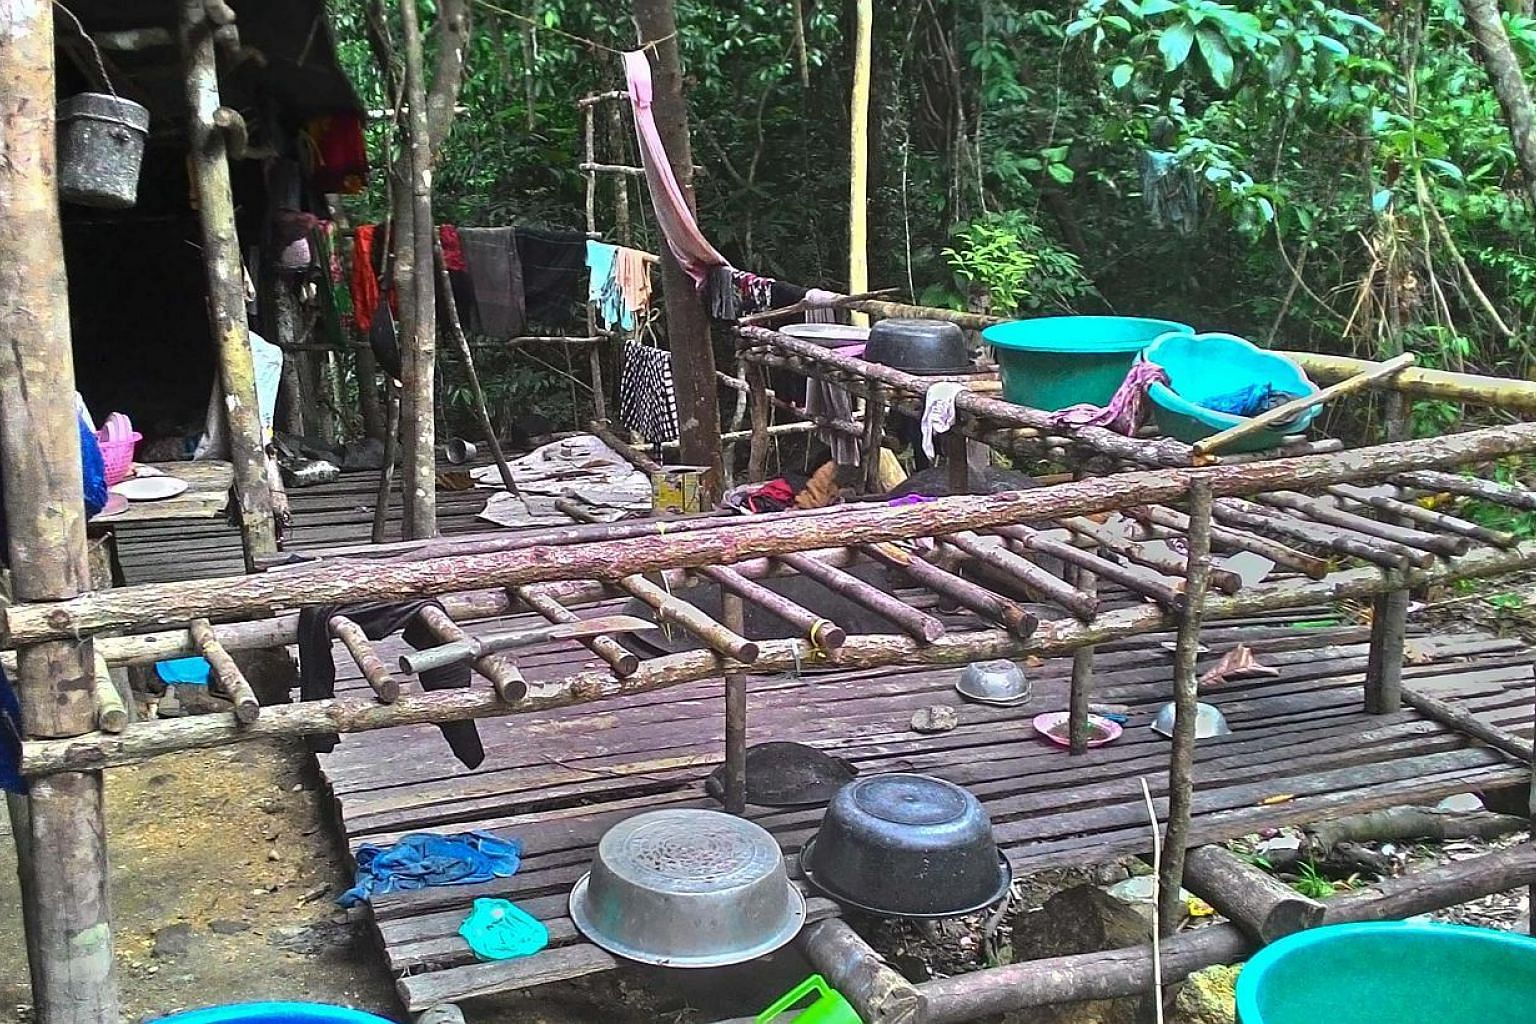 An abandoned migrant detention camp used by people smugglers in a jungle near the Malaysia-Thailand border. From May 11 to last Saturday, police personnel searched an area spanning 49.5km.